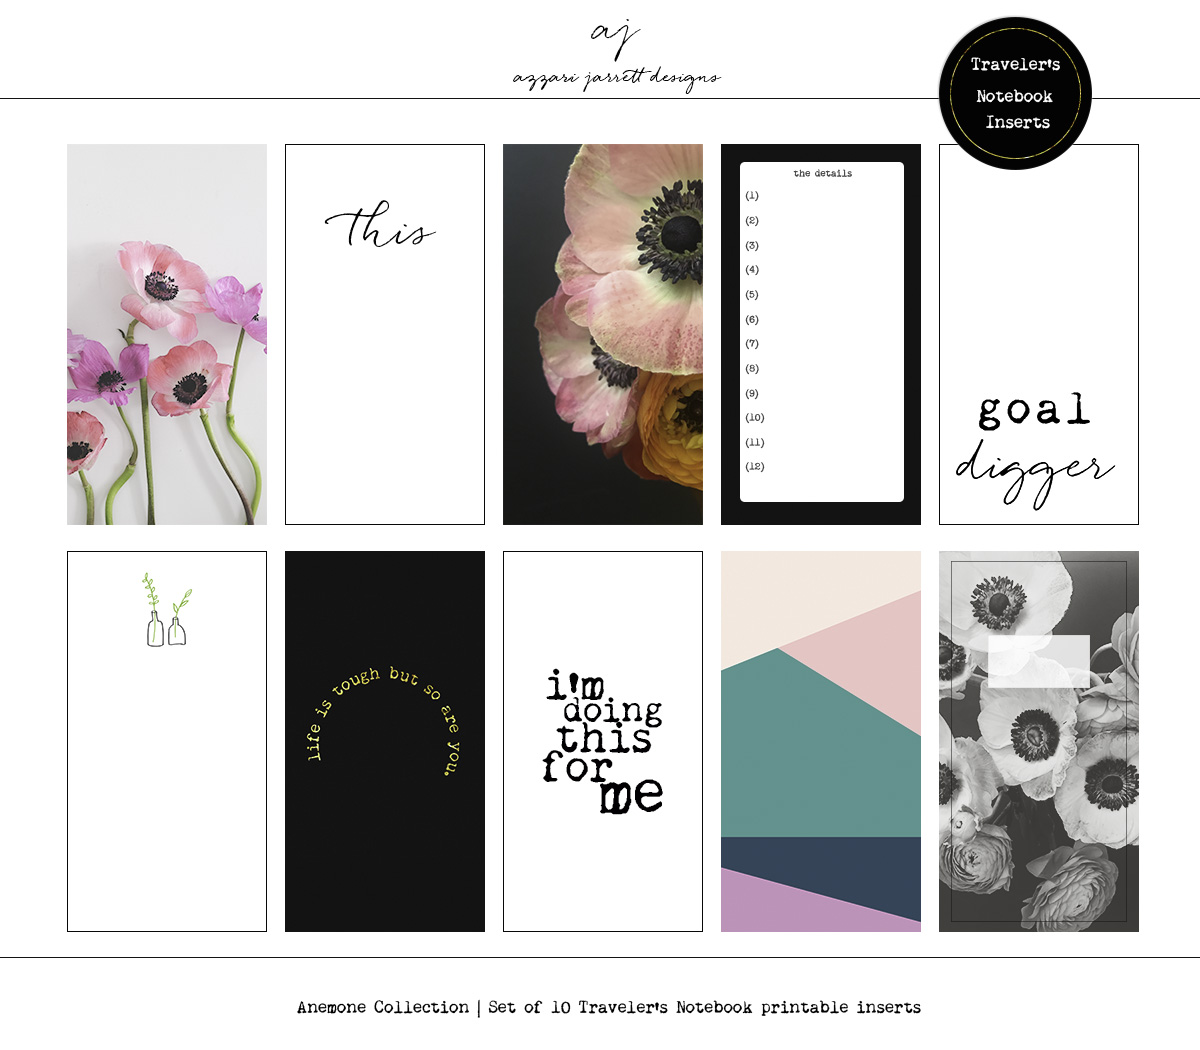 Azzari Jarrett | Anemone Collection - set of 10 printable traveler's notebook inserts.